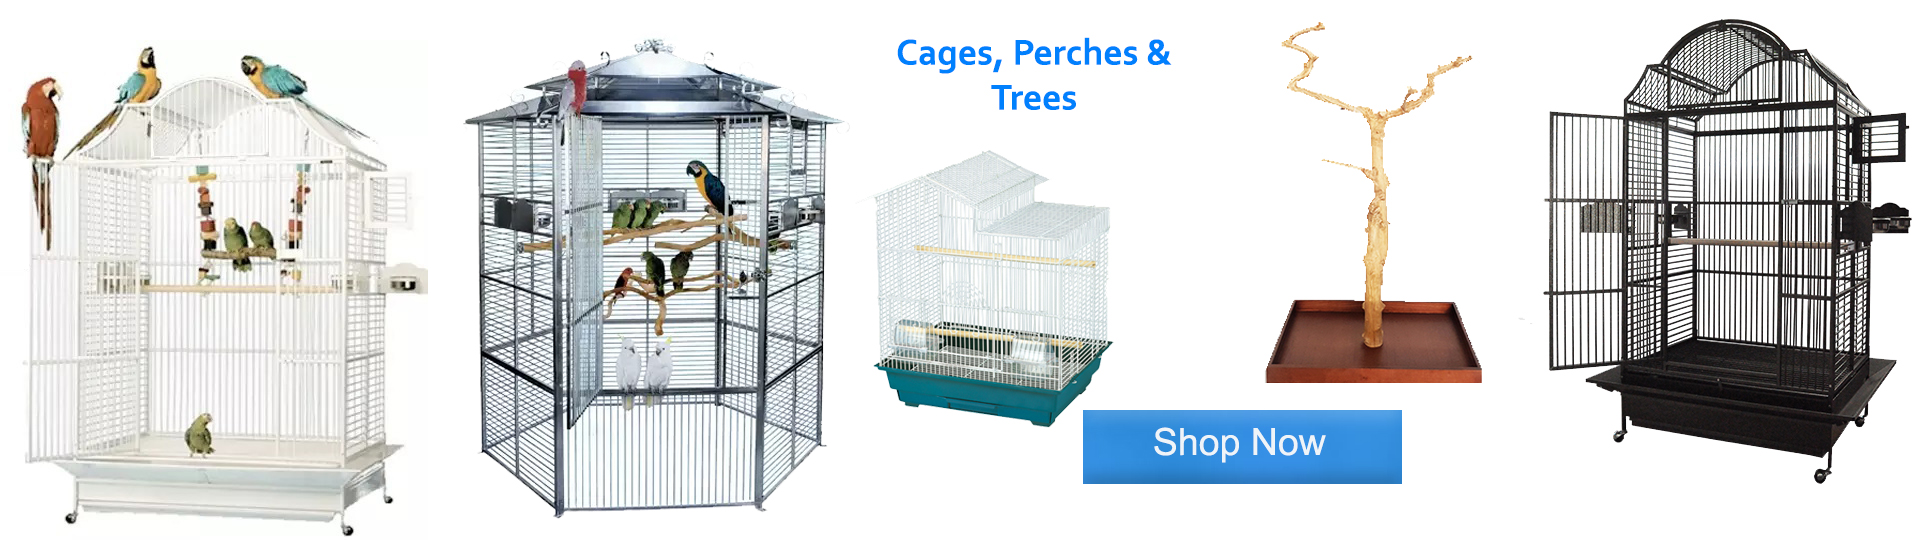 Cages and Trees